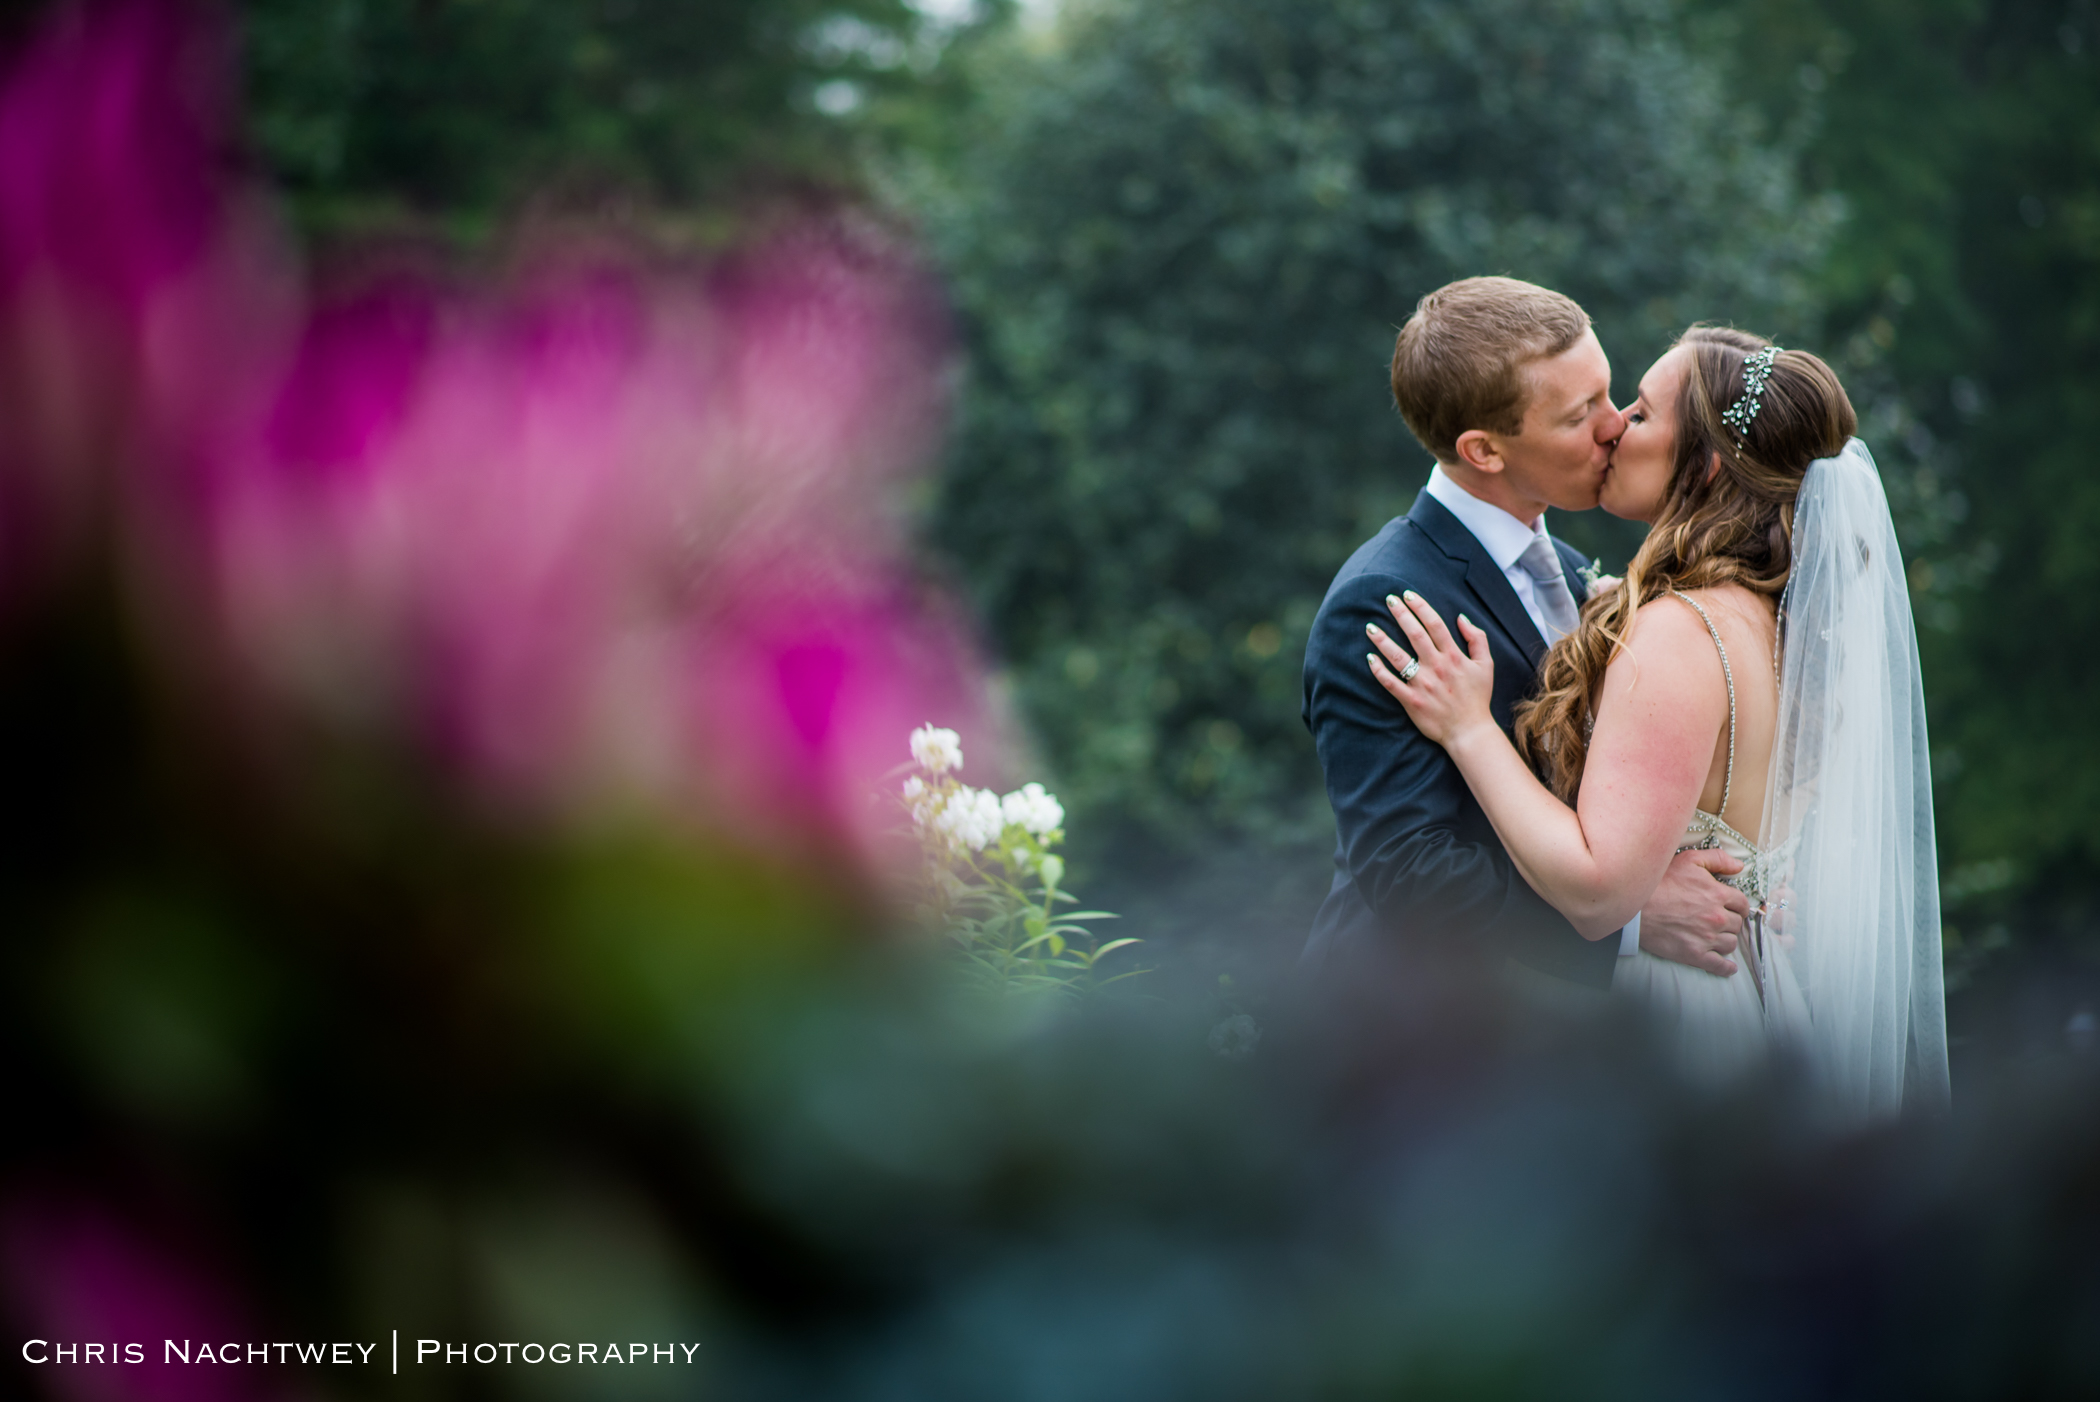 inn-at-mystic-wedding-photos-chris-nachtwey-photography-2018-20.jpg